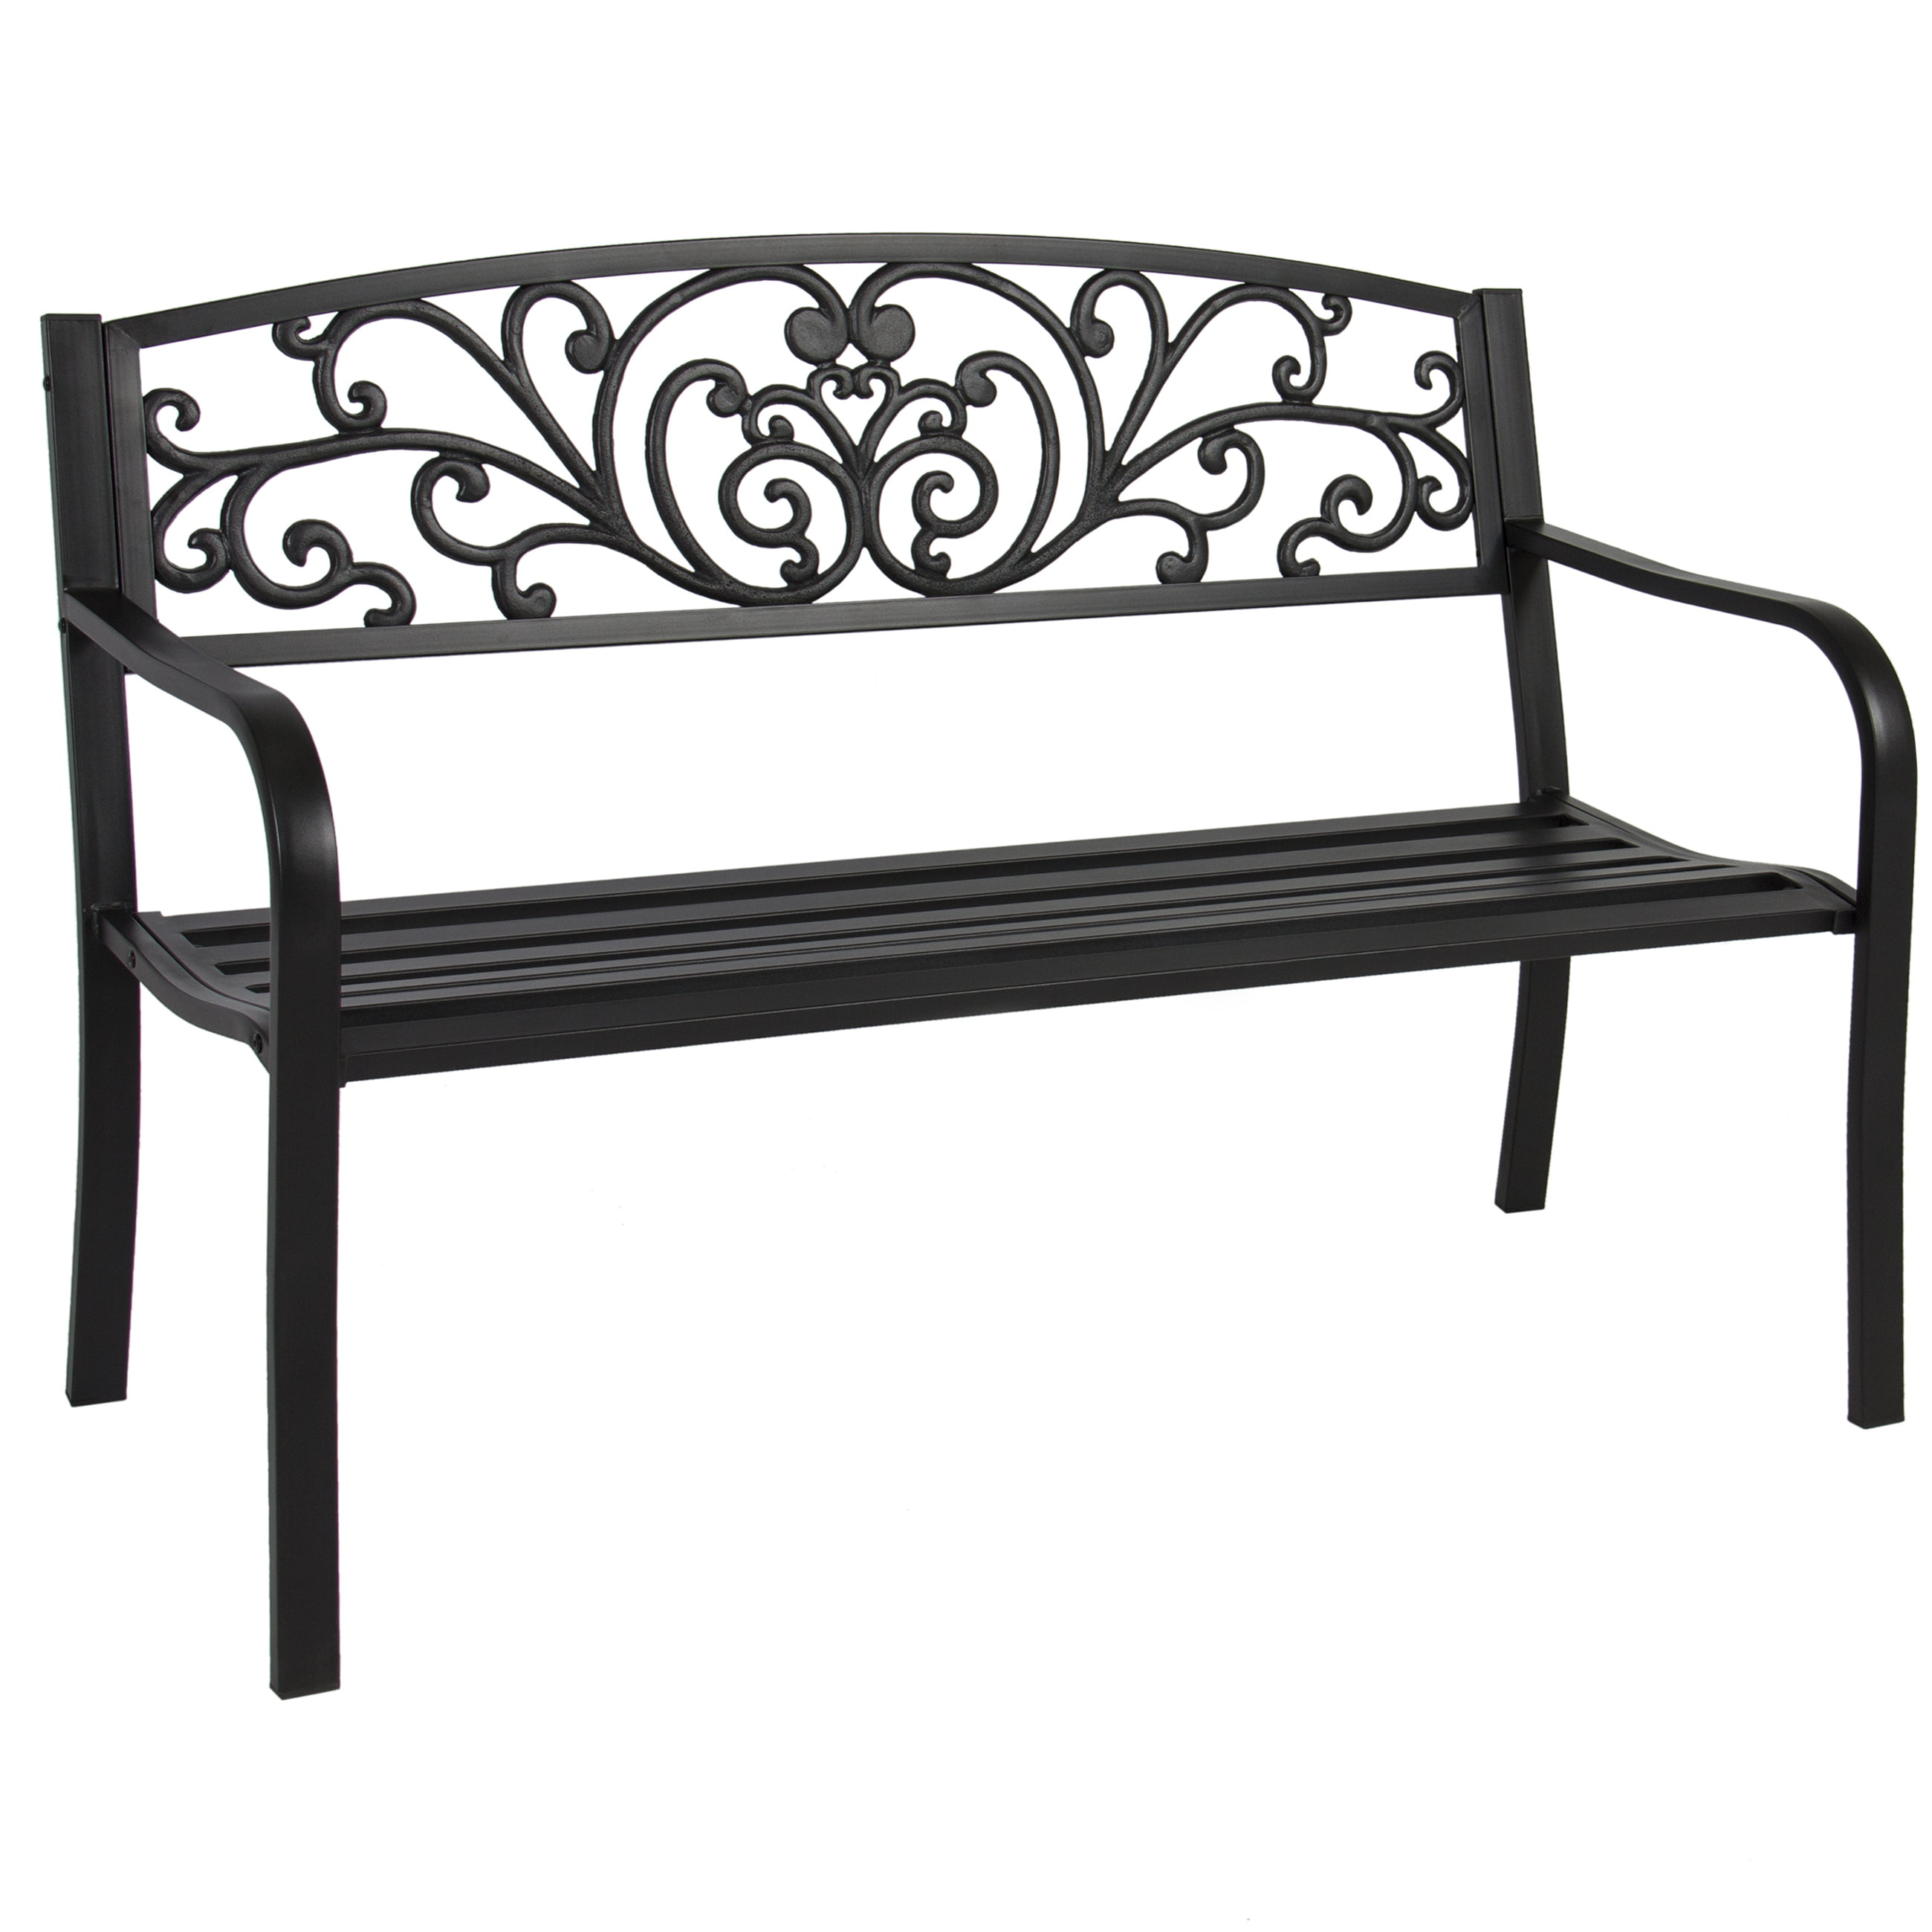 Delicieux Best Choice Products 50in Outdoor Patio Garden Bench Park Yard Furniture  Porch Chair W/ Steel Frame   Black   Walmart.com